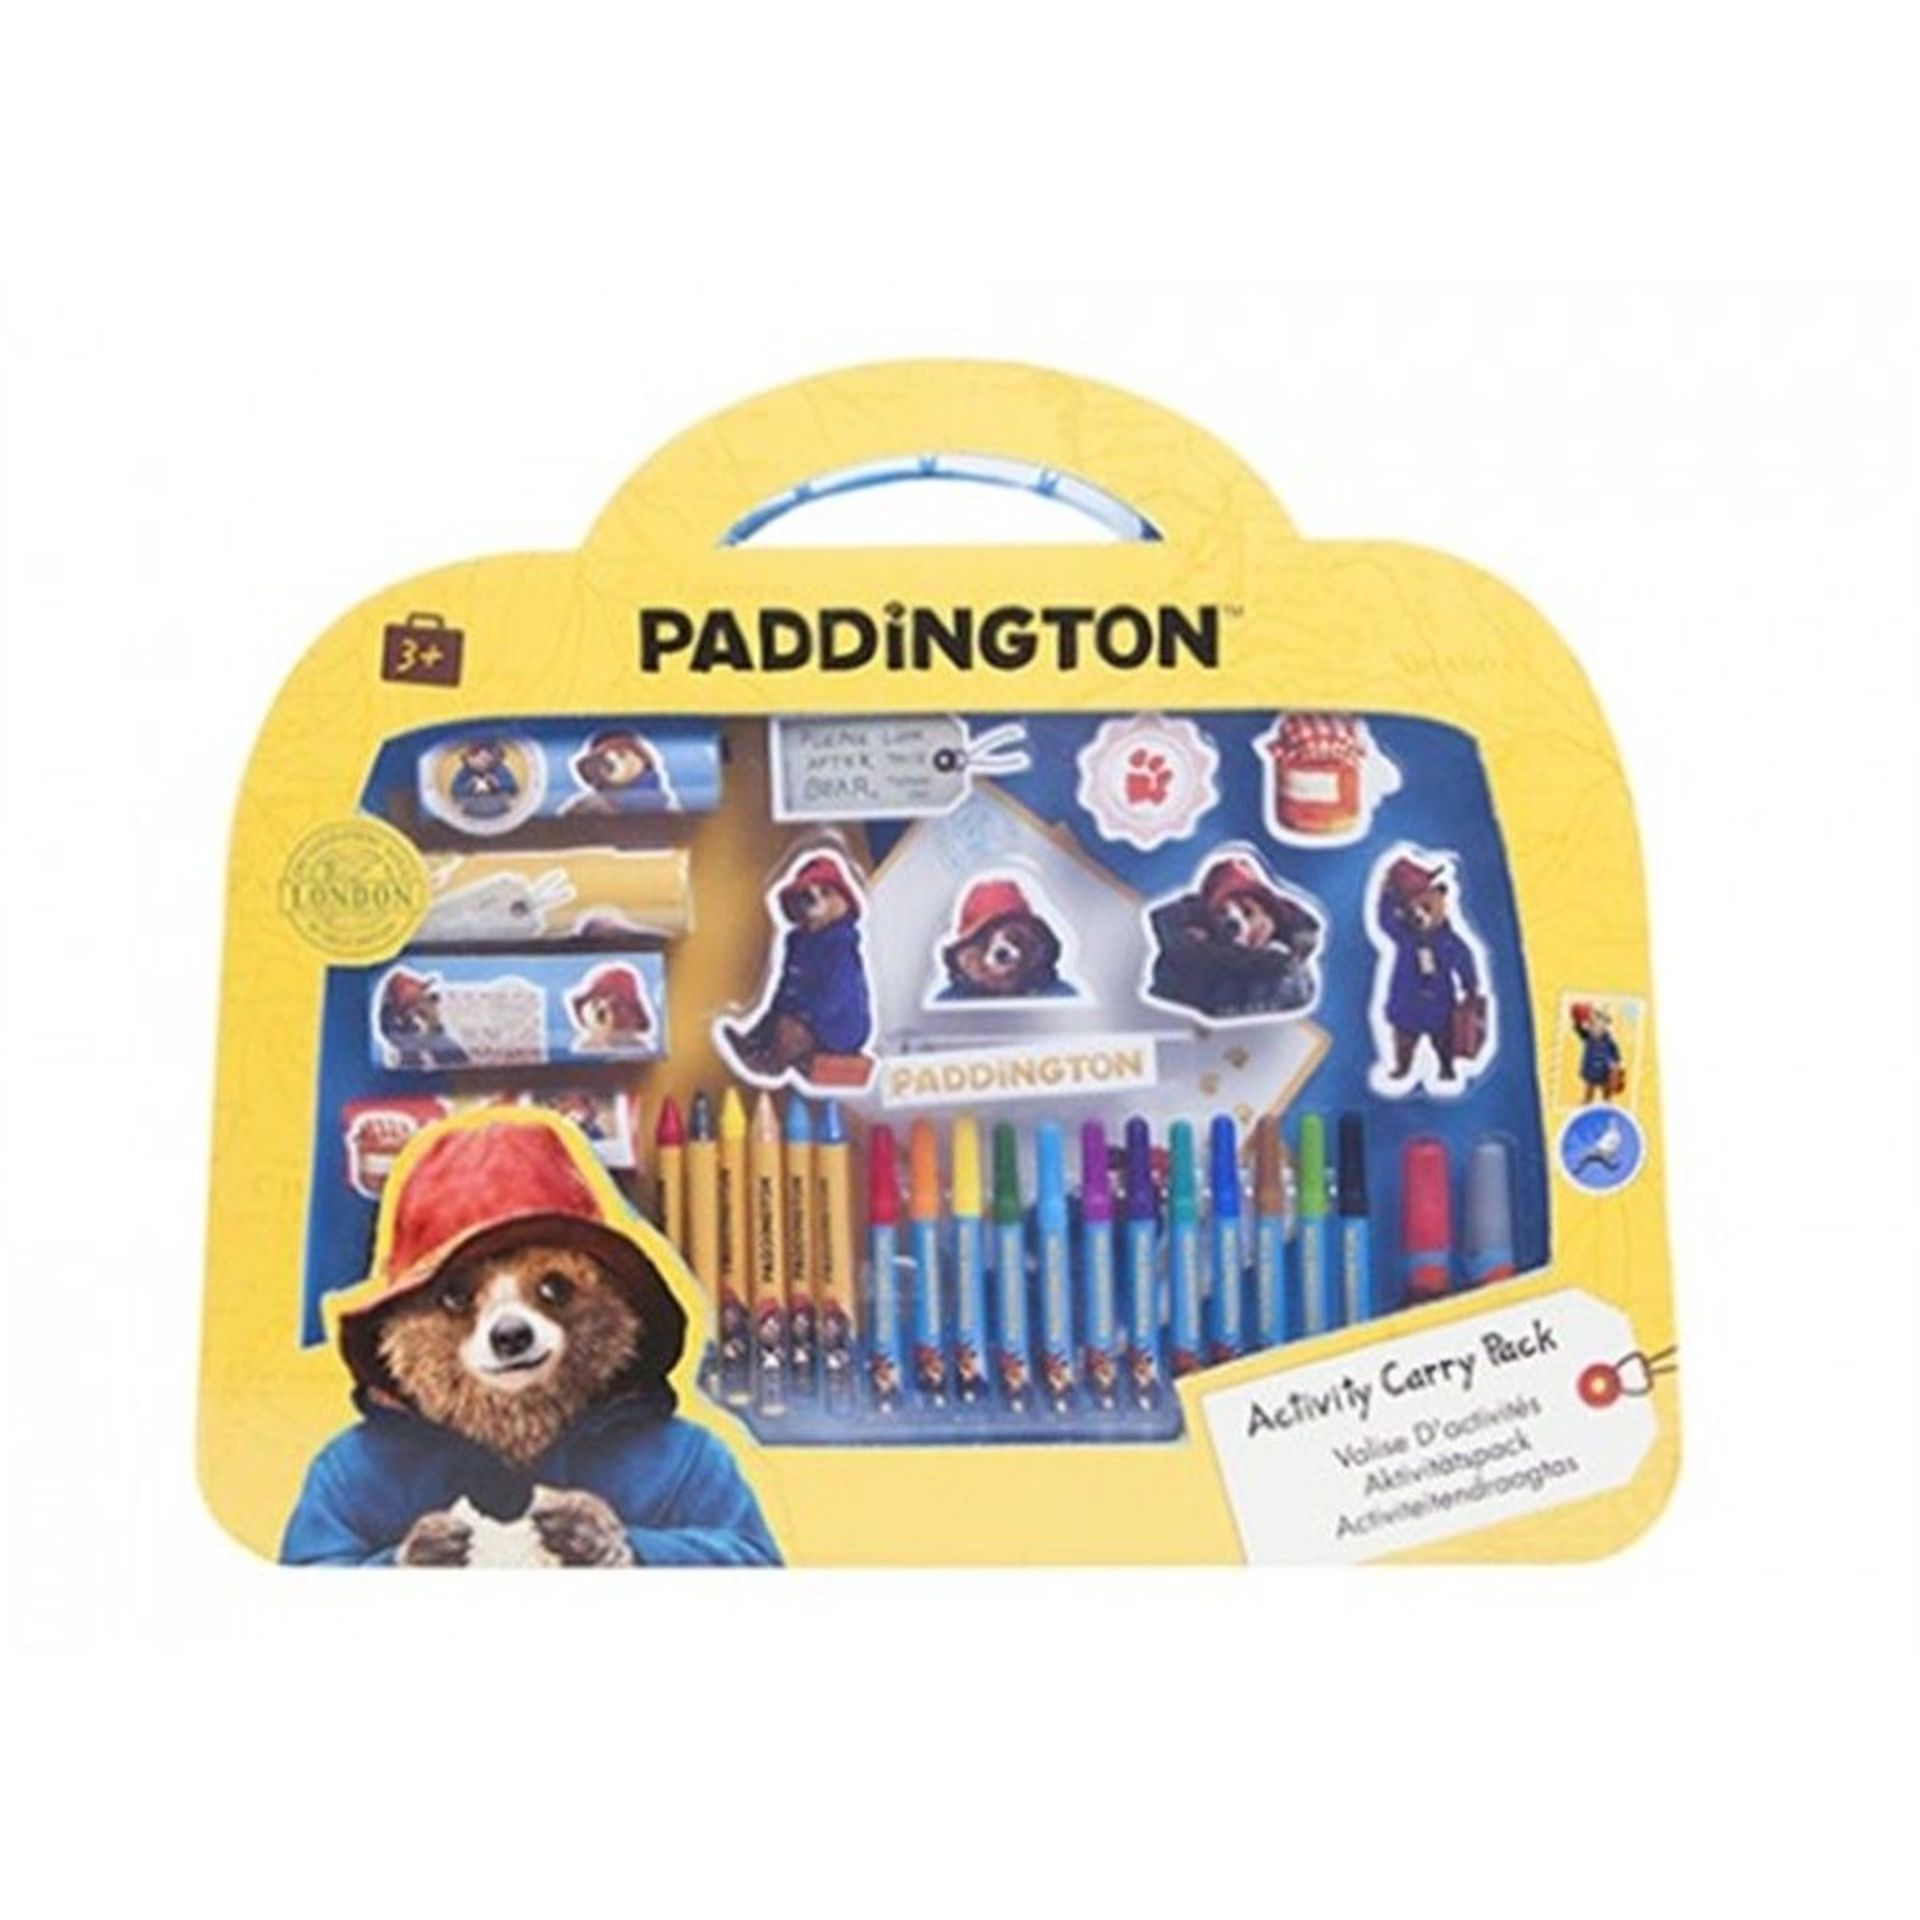 Lot 12570 - V Brand New Paddington Bear Large Activity Set In Suitcase Box ISP £15.89 (ebay)